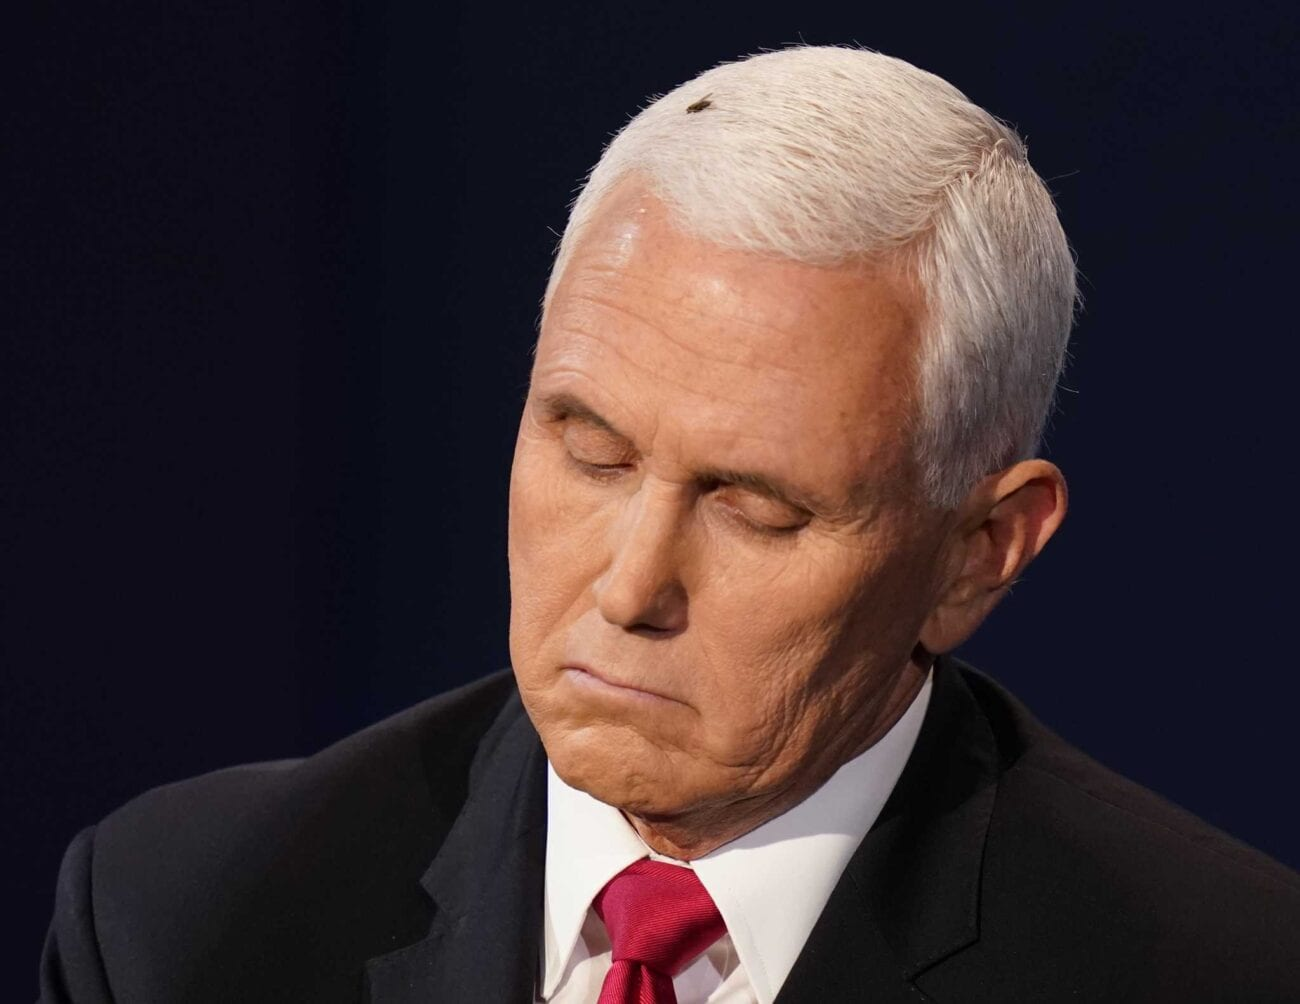 The fly on Mike Pence's head won the VP debate: All the best memes – Film  Daily